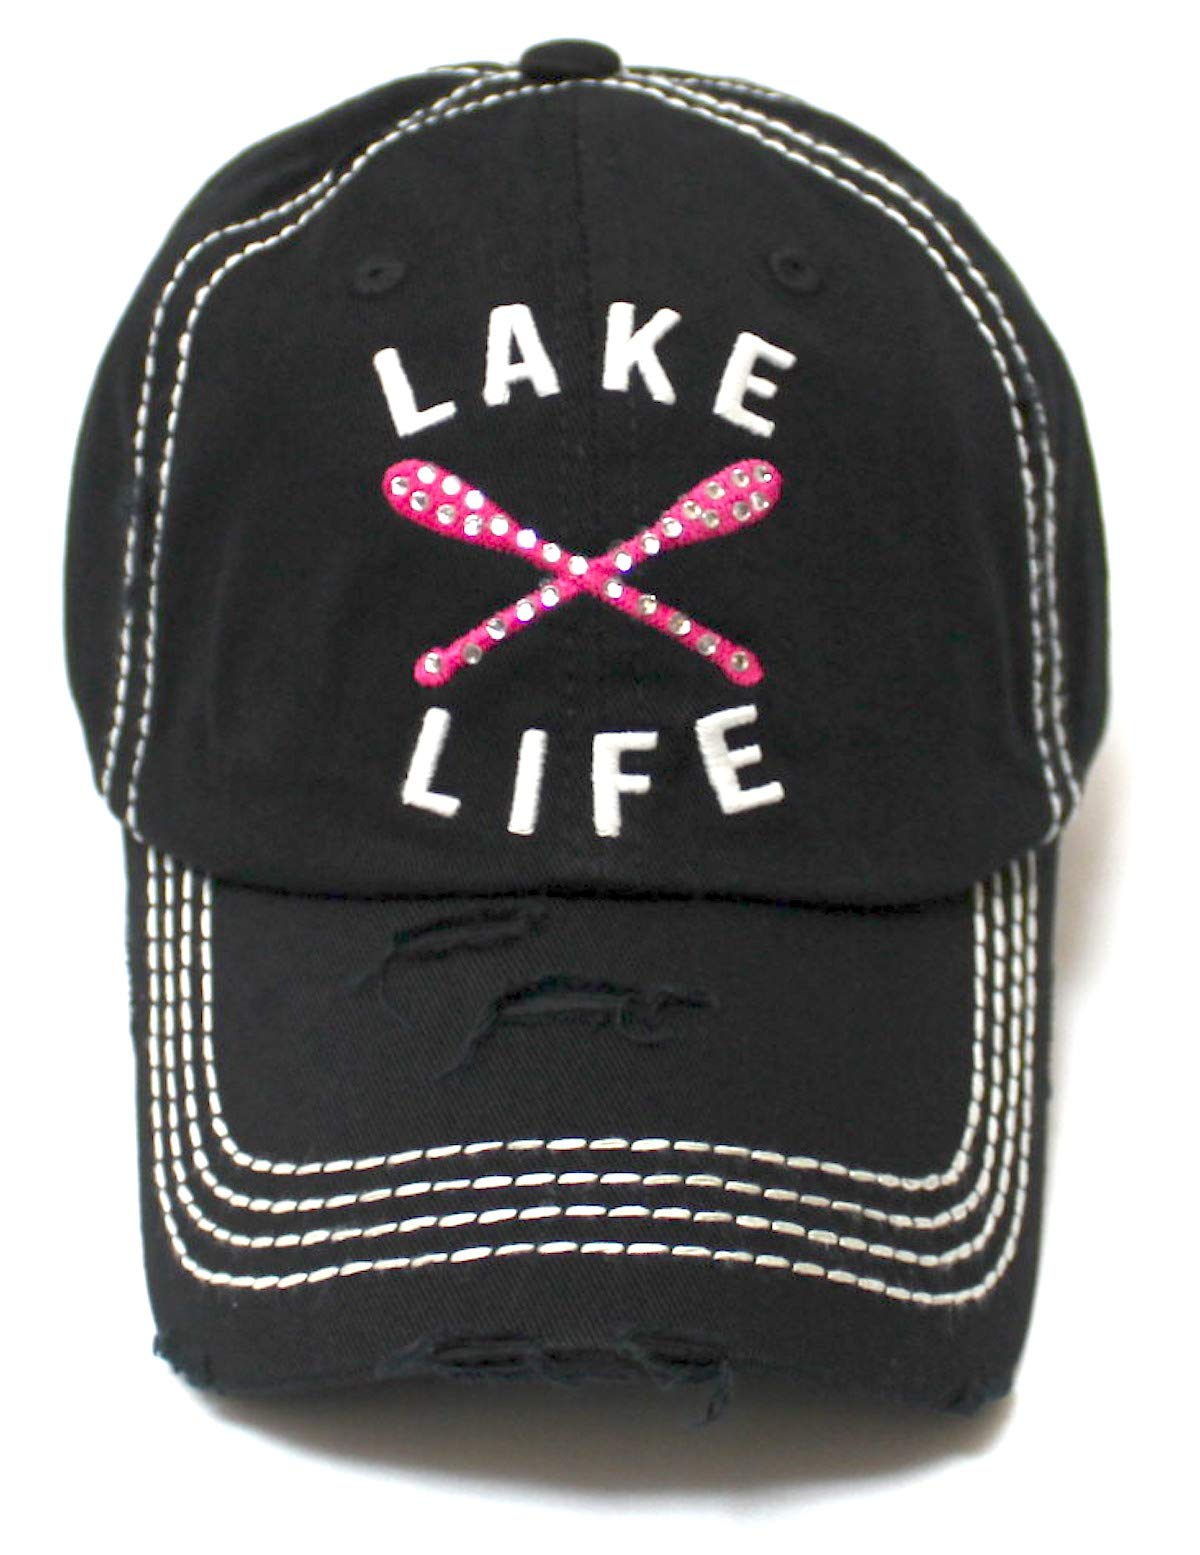 Women's Vintage Beach Cap Lake Life Embellished Boat Paddles Monogram Embroidery Hat, Black - Caps 'N Vintage